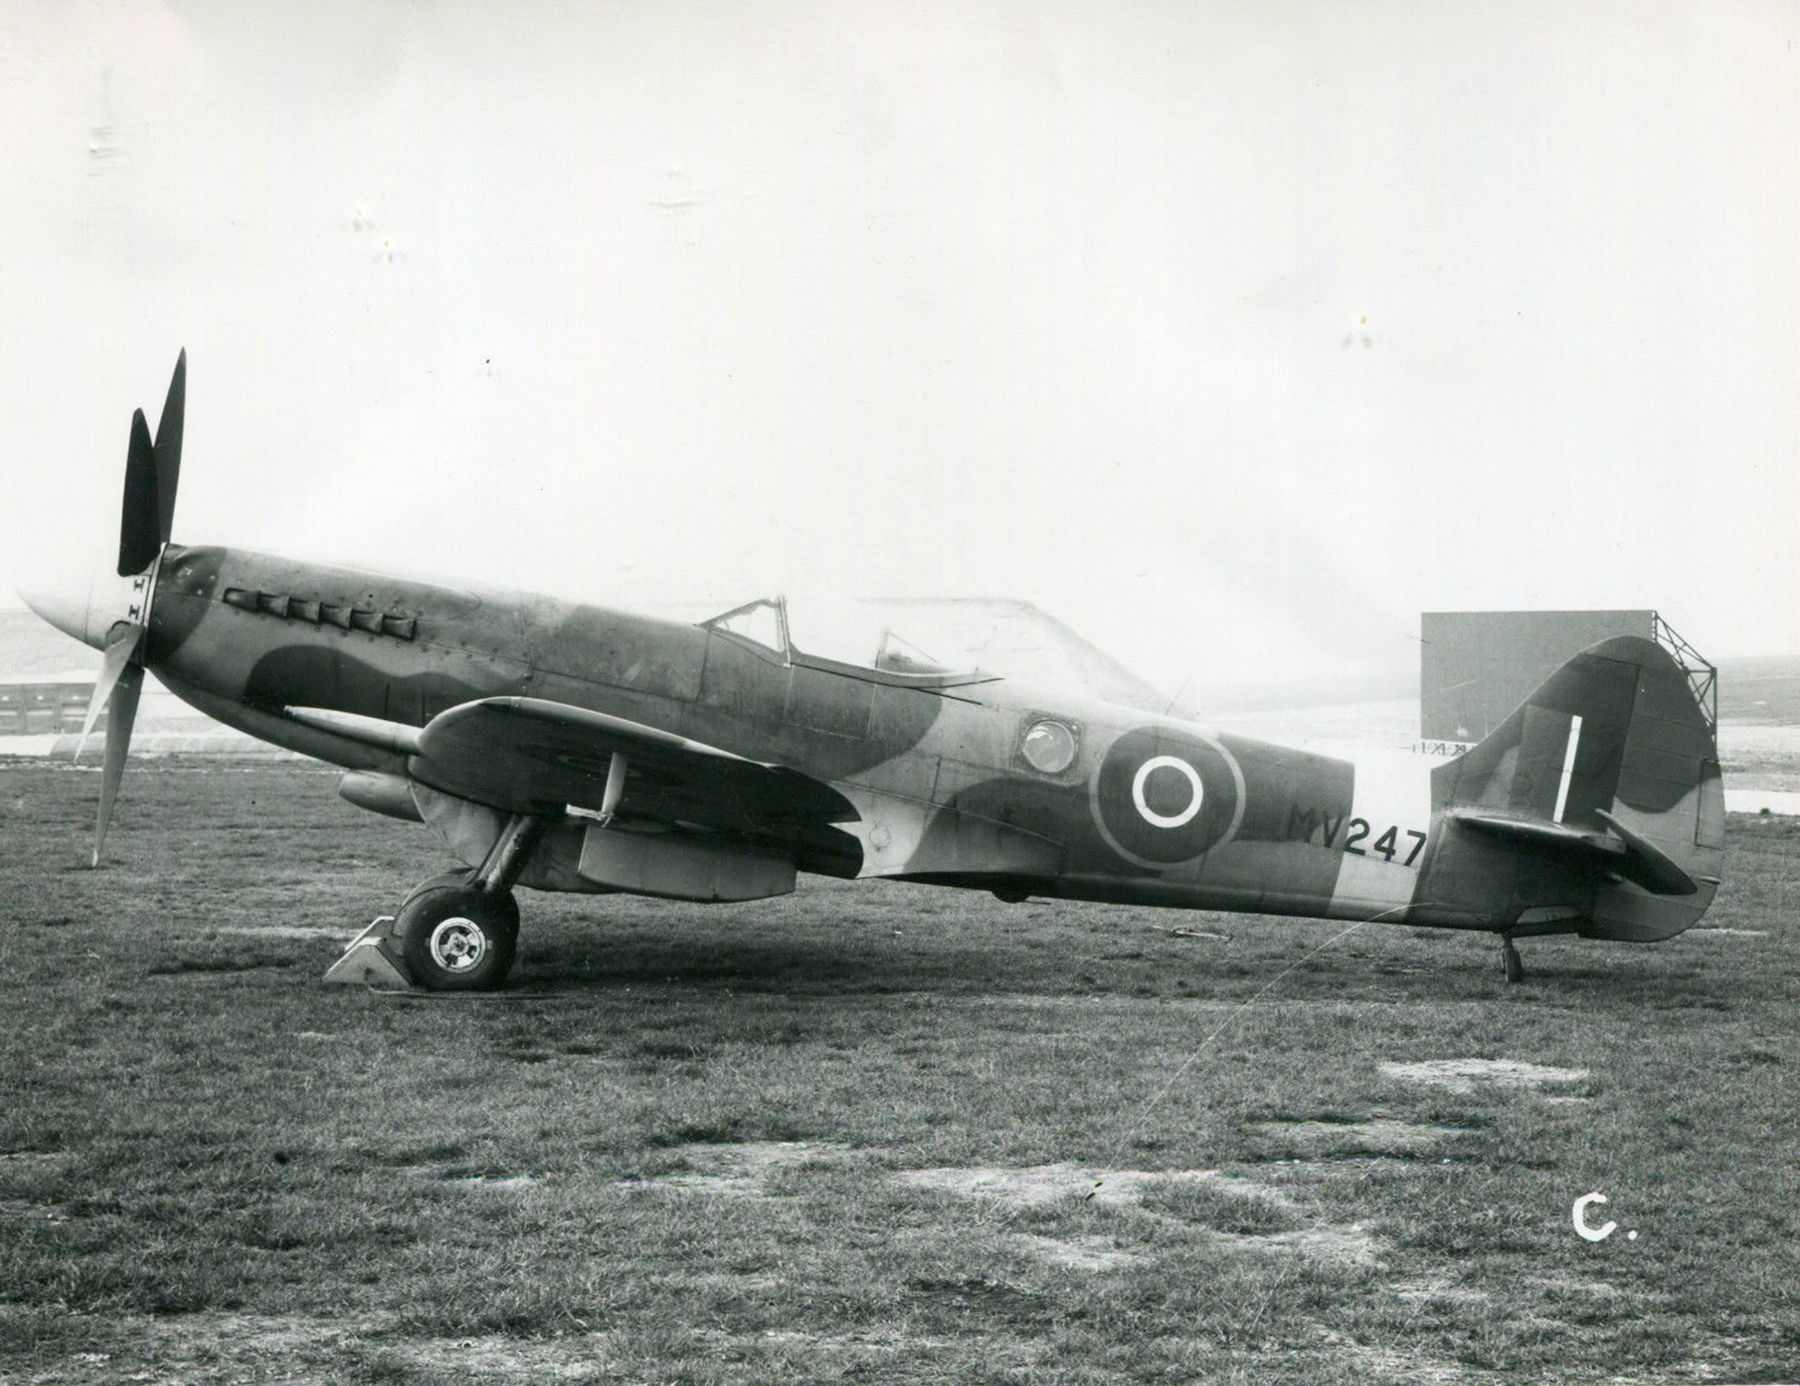 Spitfire FRXIV fuel functioning tests MV247 1945 01